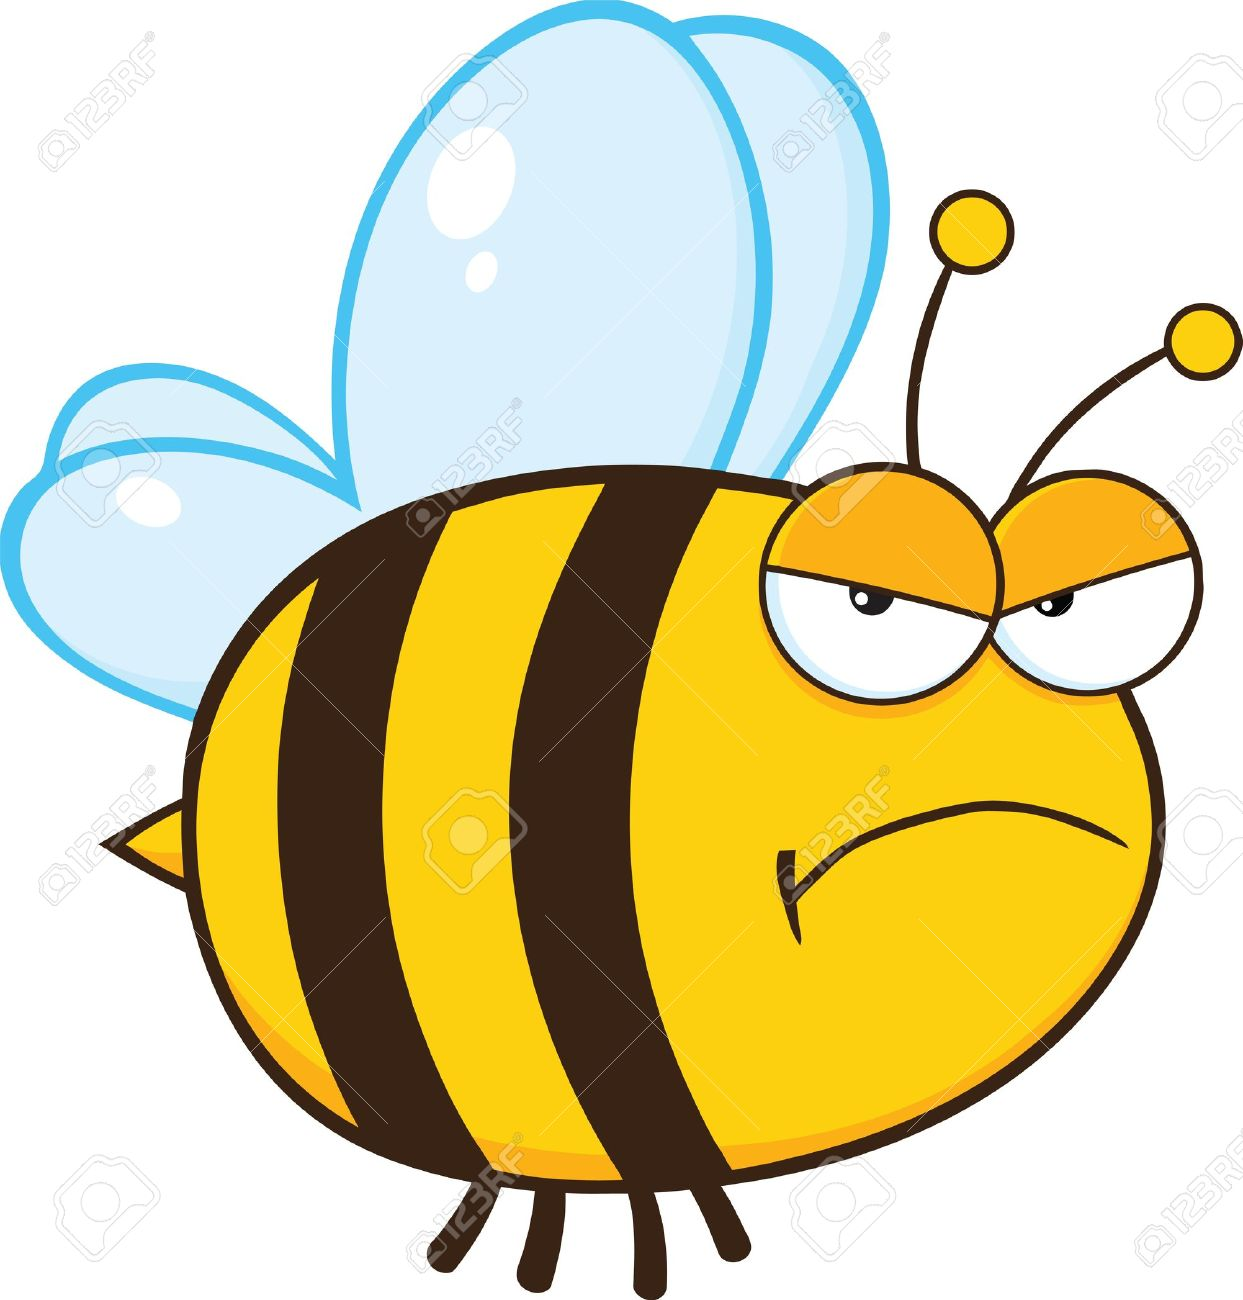 1243x1300 Angry Bee Cartoon Mascot Character Royalty Free Cliparts, Vectors